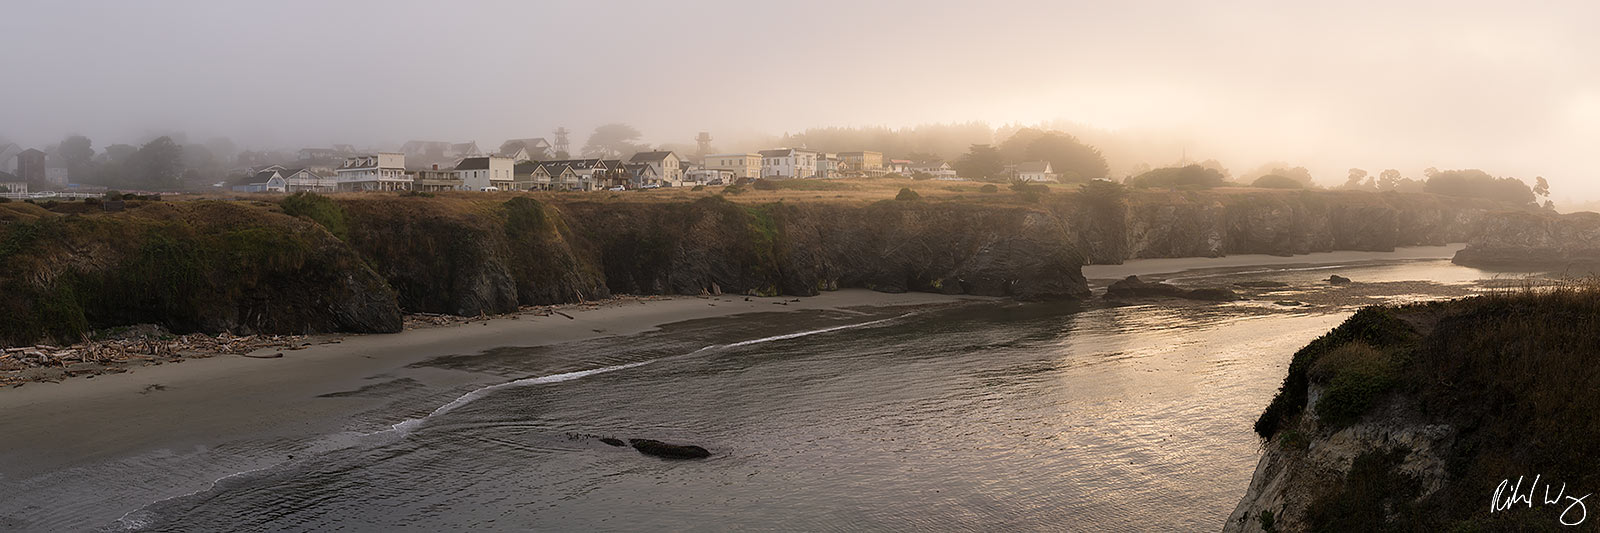 Mendocino Panoramic, California Limited Edition of 10 Prints A popular weekend destination for San Francisco Bay Area residents...